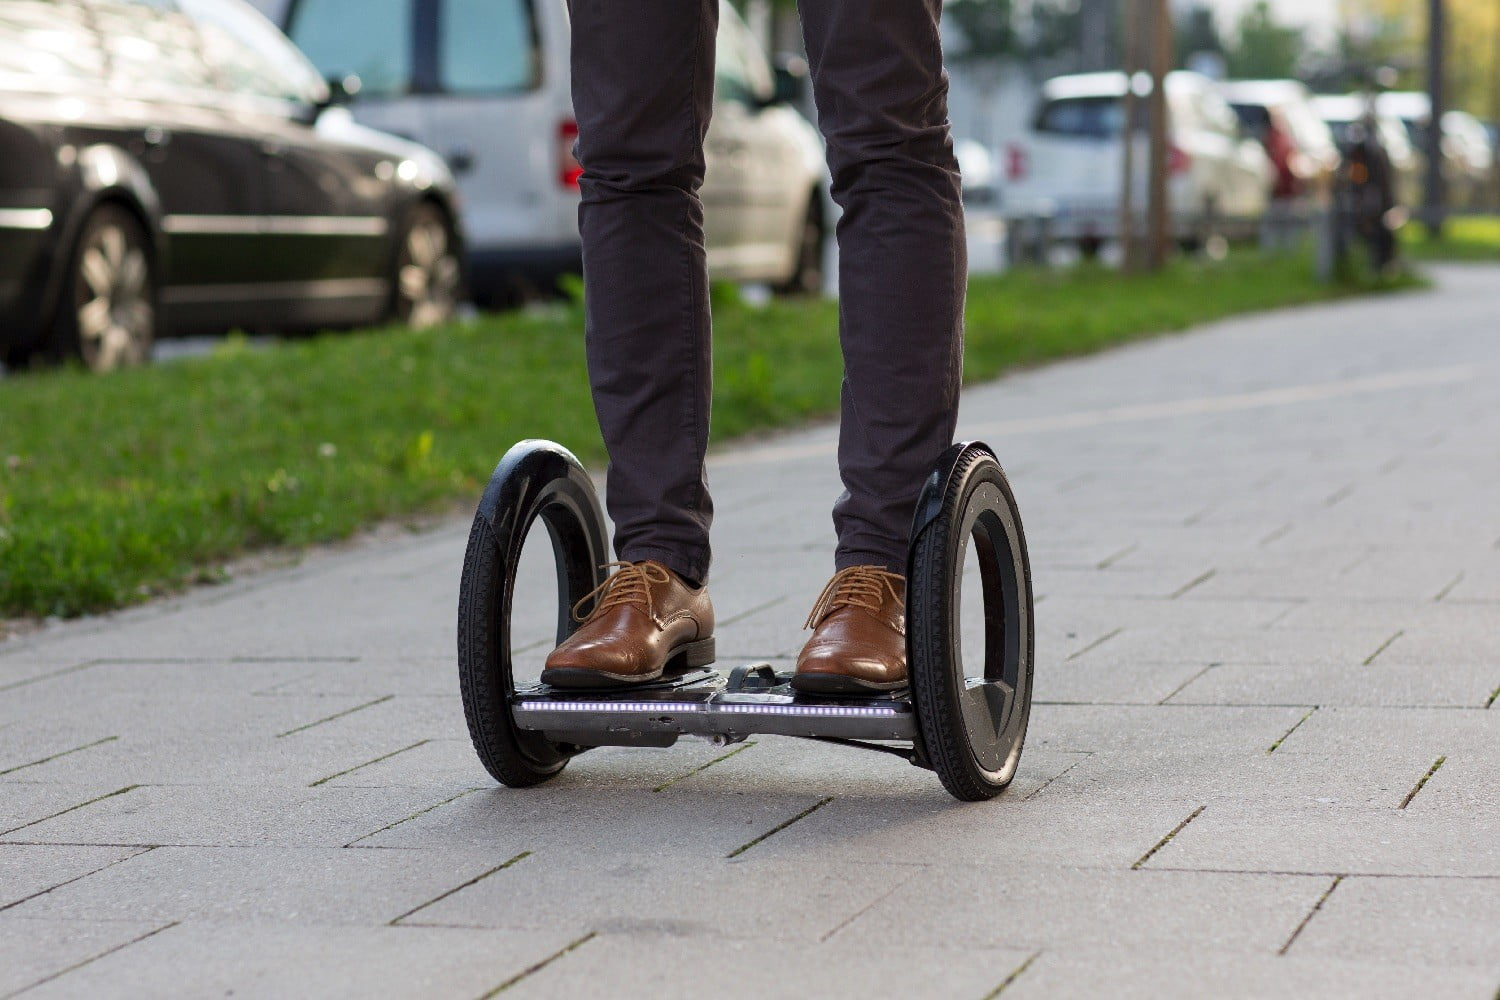 The Innovative Urmo Hoverboard Folds Flat In Just 2 Seconds